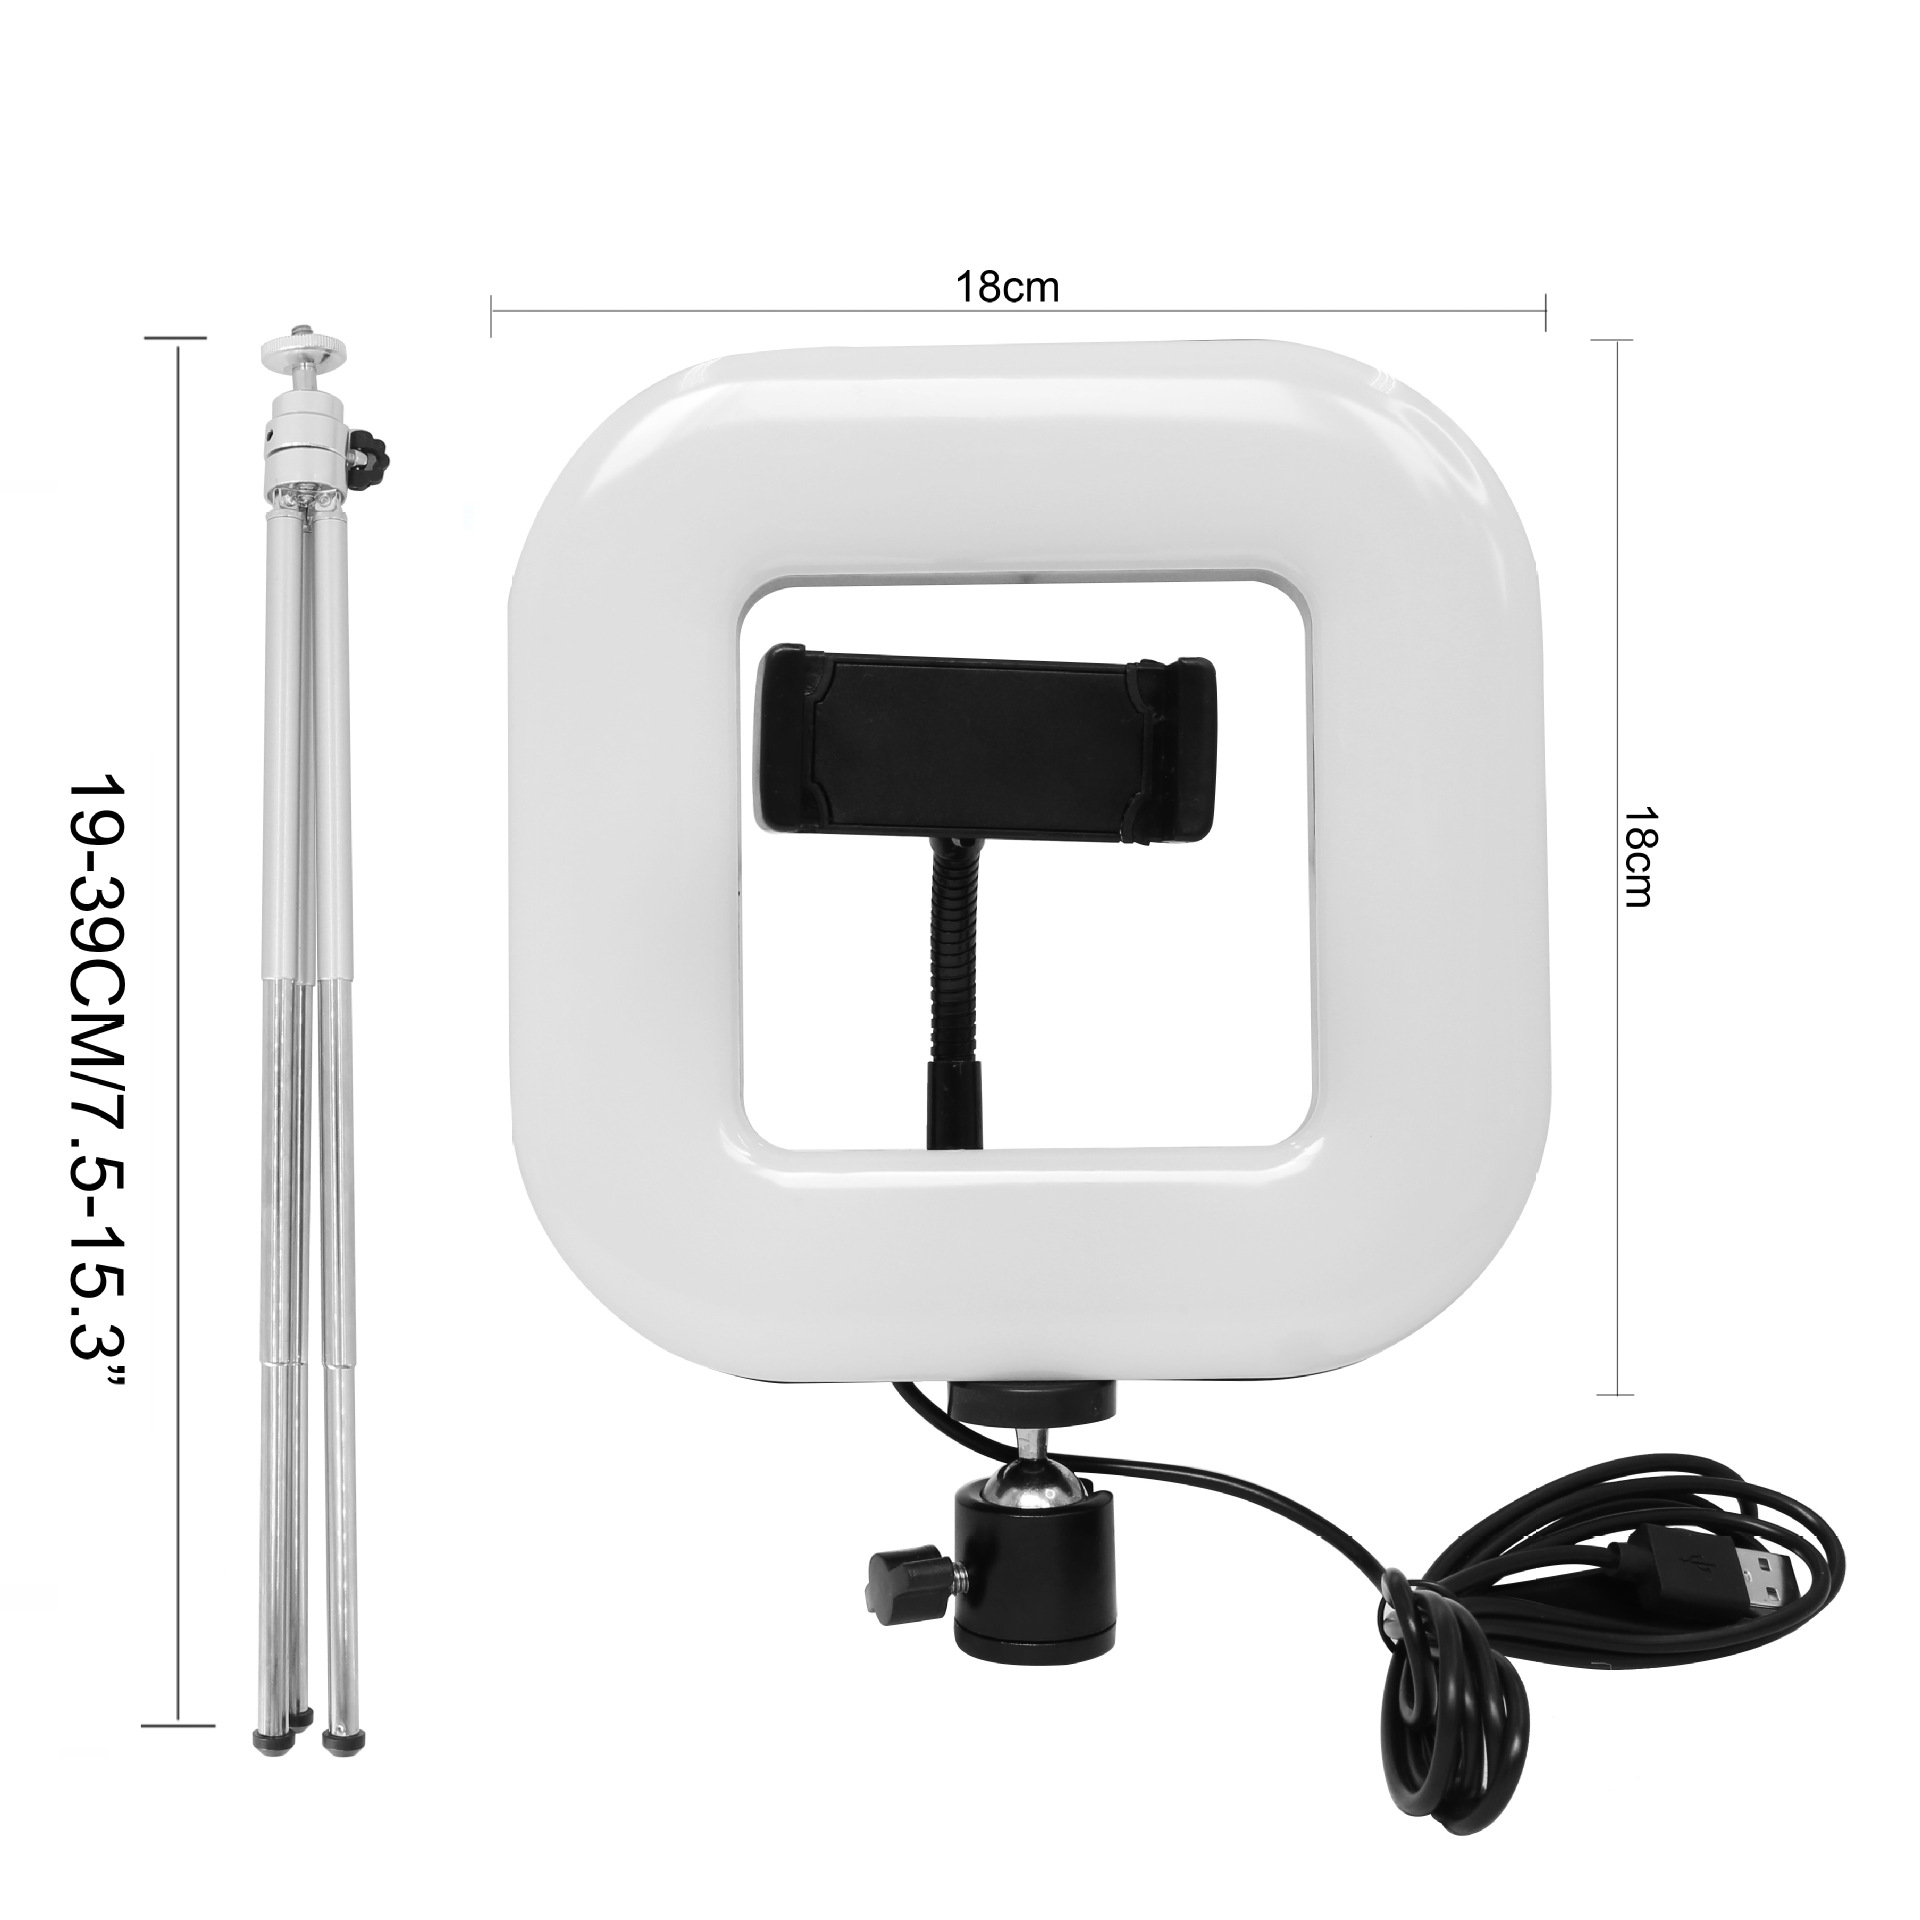 18cm Dimmable LED Square Light with Tripod Phone Fill Light Portable Clip-on for Selfie Live Broadcast Girl Makes up black